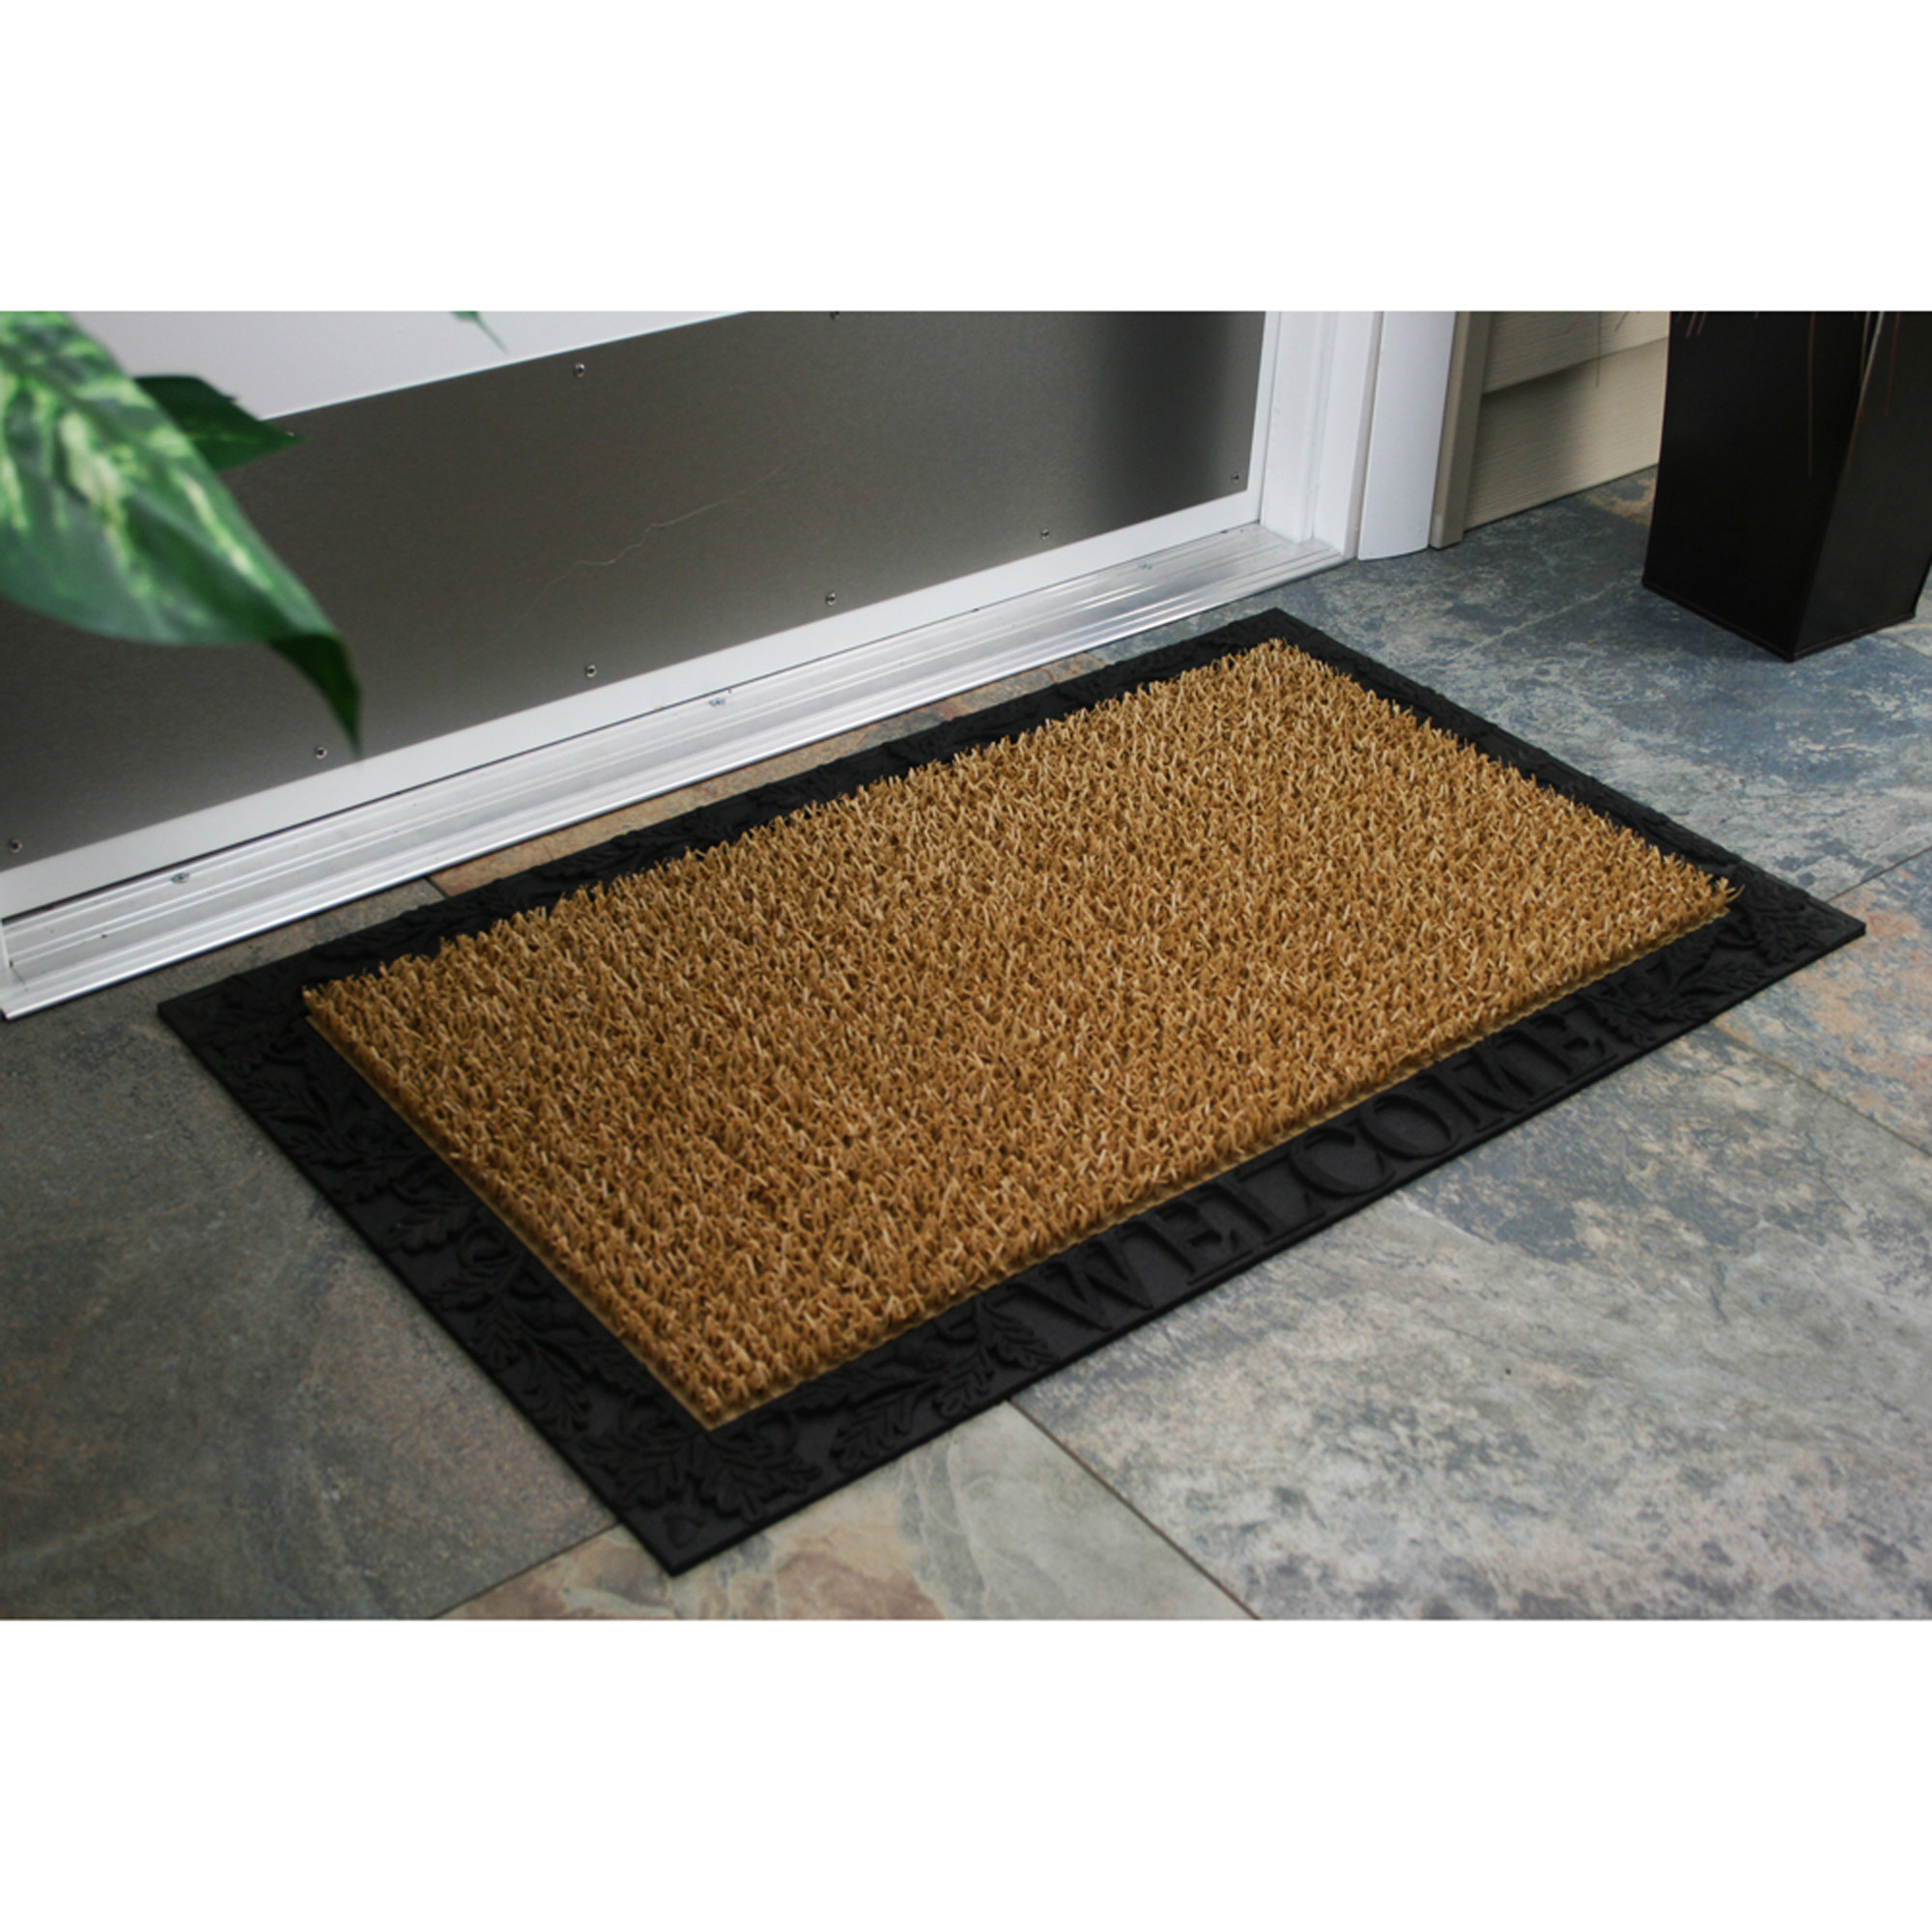 Astroturf Ser Door Mat Acorn And Oak Leaf Welcome With Rubber Border 18 X 30 Cocoa